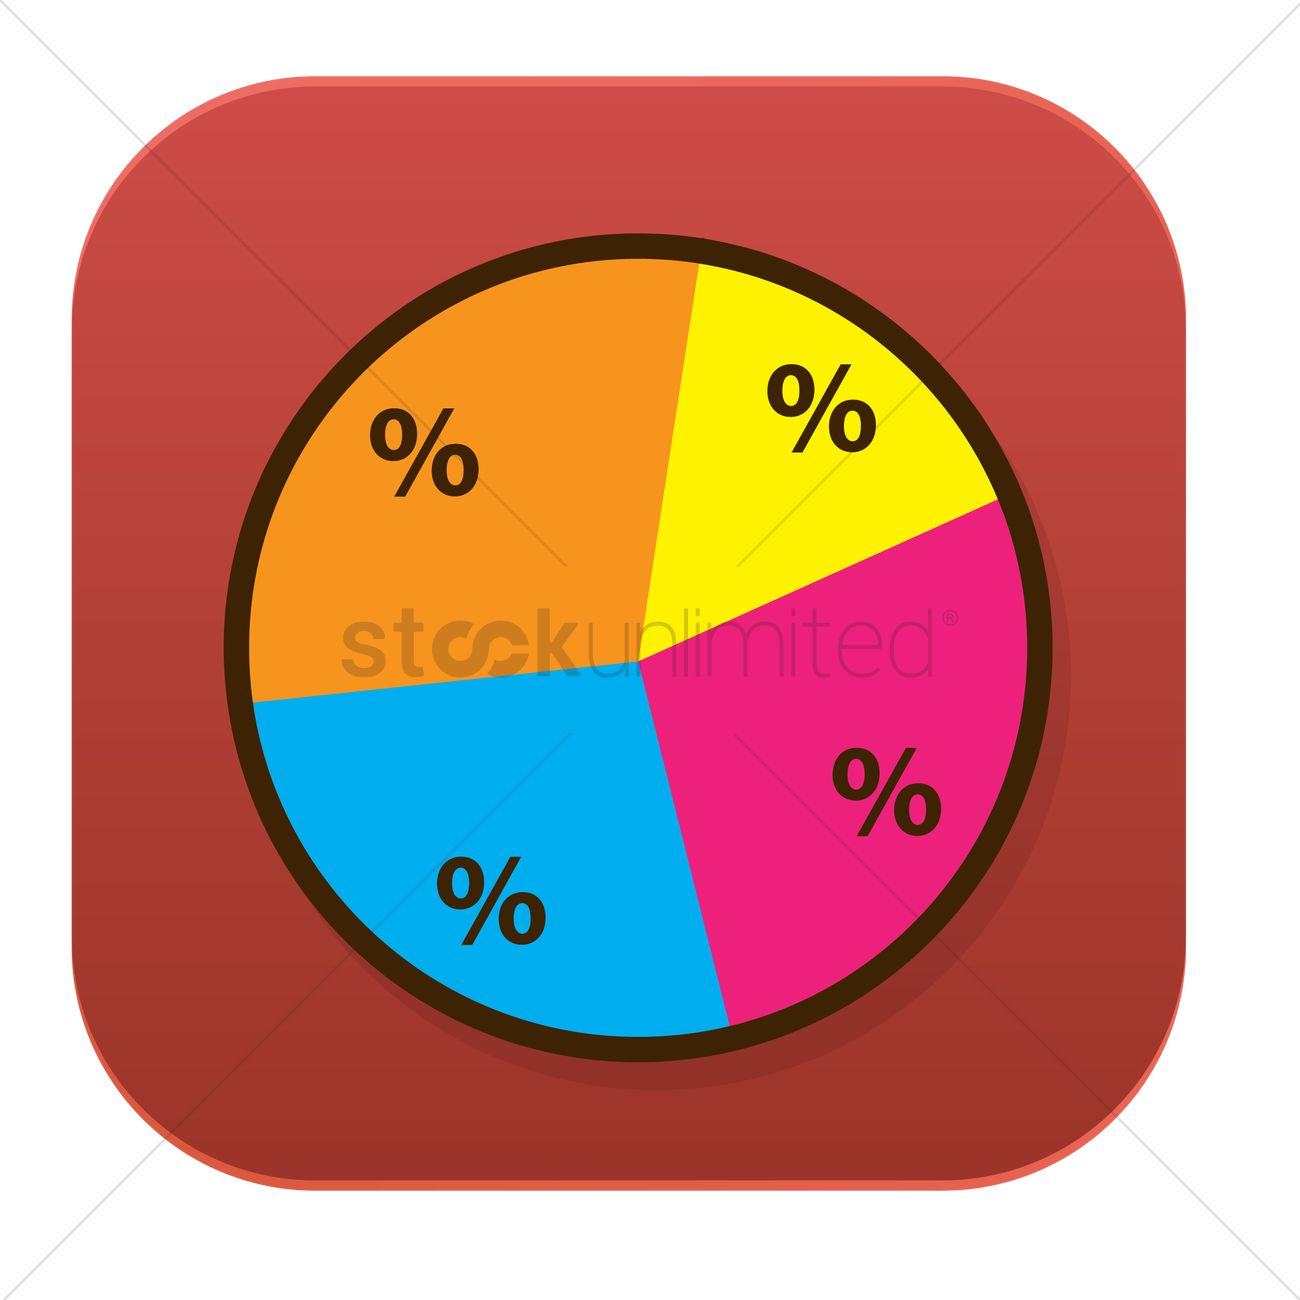 Free Pie Chart Vector Image 1241510 Stockunlimited